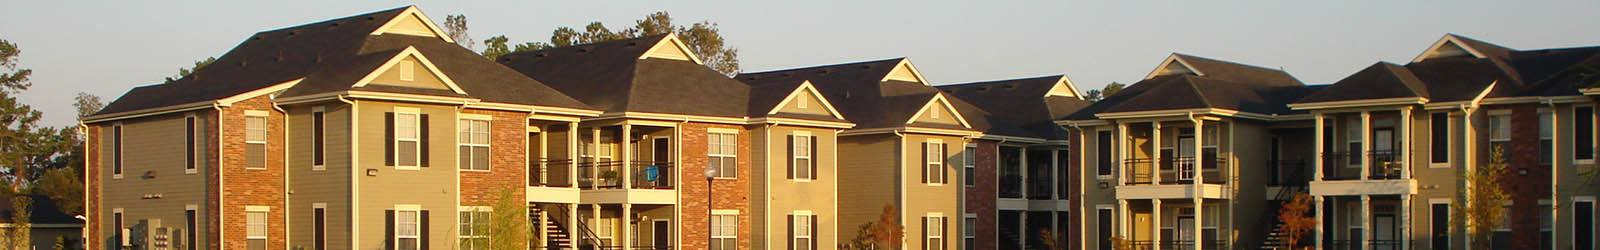 Request information about our Lake Charles apartments